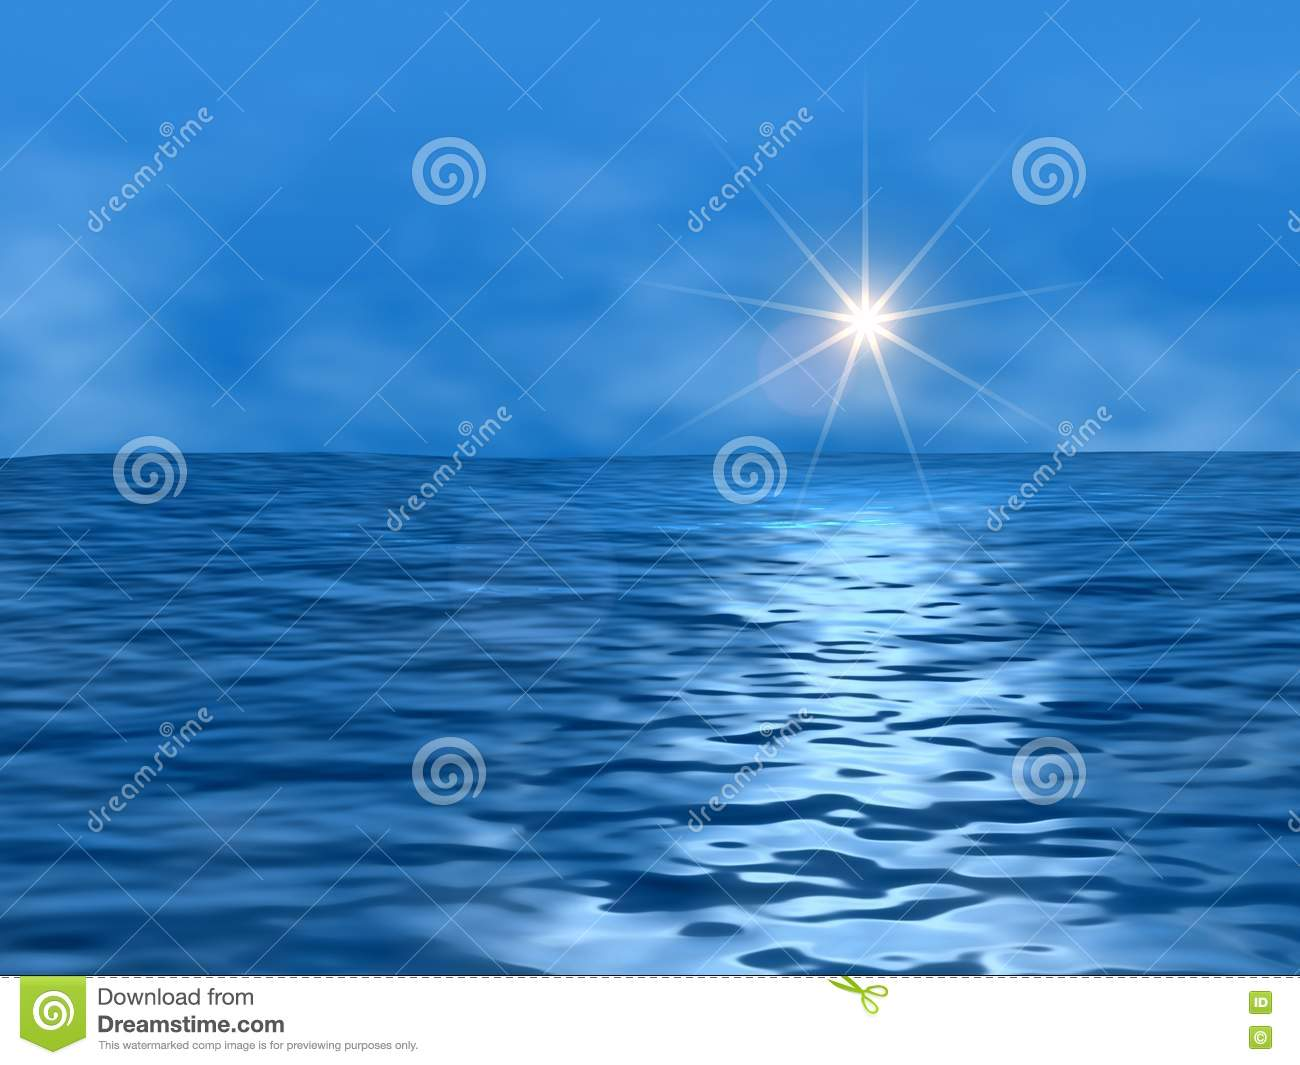 Stock Images  Ocean And Sun Picture. Image  5642574 c2f8b4f754e